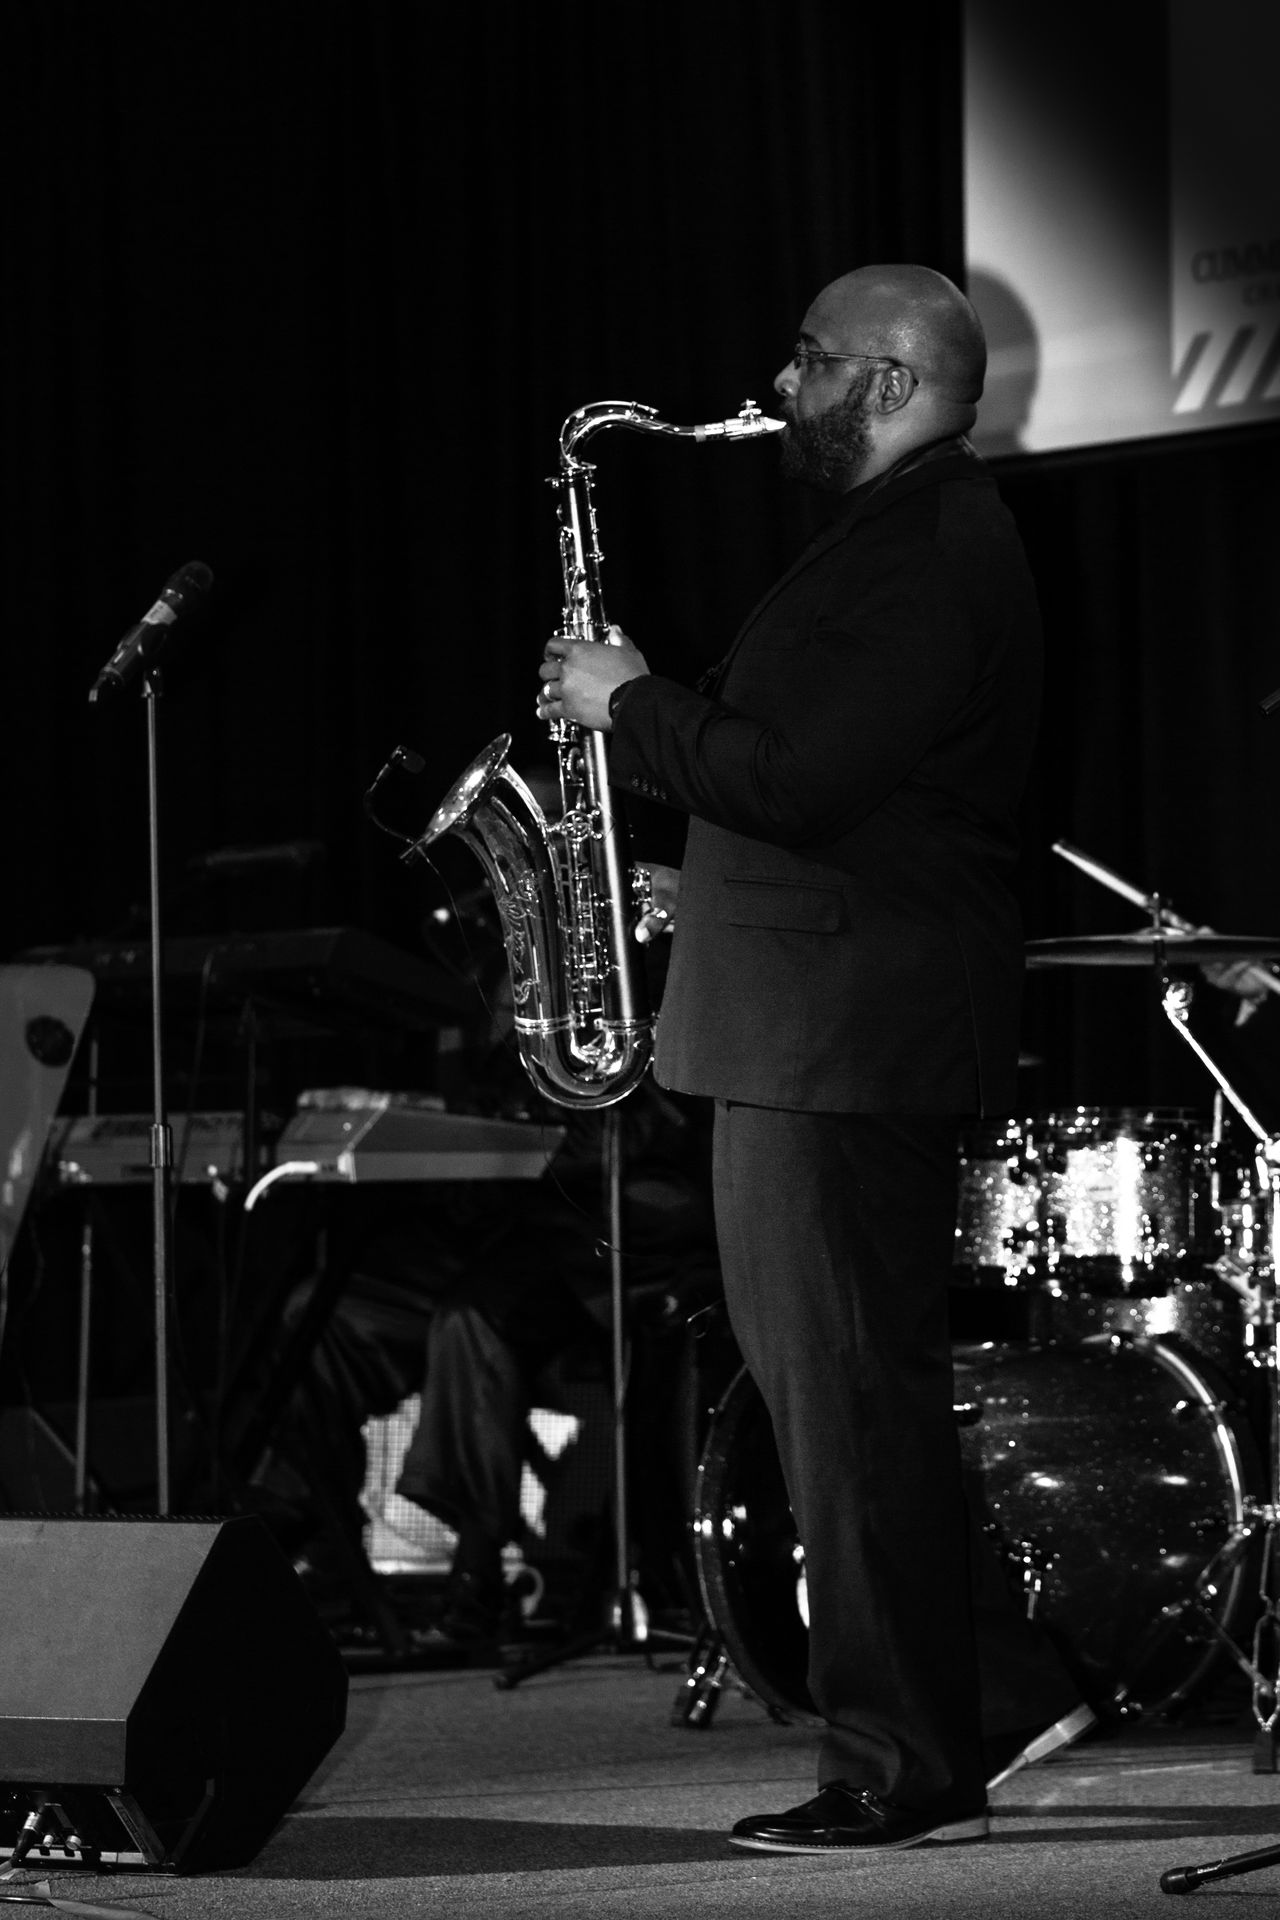 Adult Adults Only Arts Culture And Entertainment Full Length Indoors  Jazz Music Mature Men Men Microphone Music Musical Instrument Musician One Man Only One Person One Senior Man Only Only Men People Performance Piano Playing Saxophone Saxophonist Skill  Stage - Performance Space Trumpet